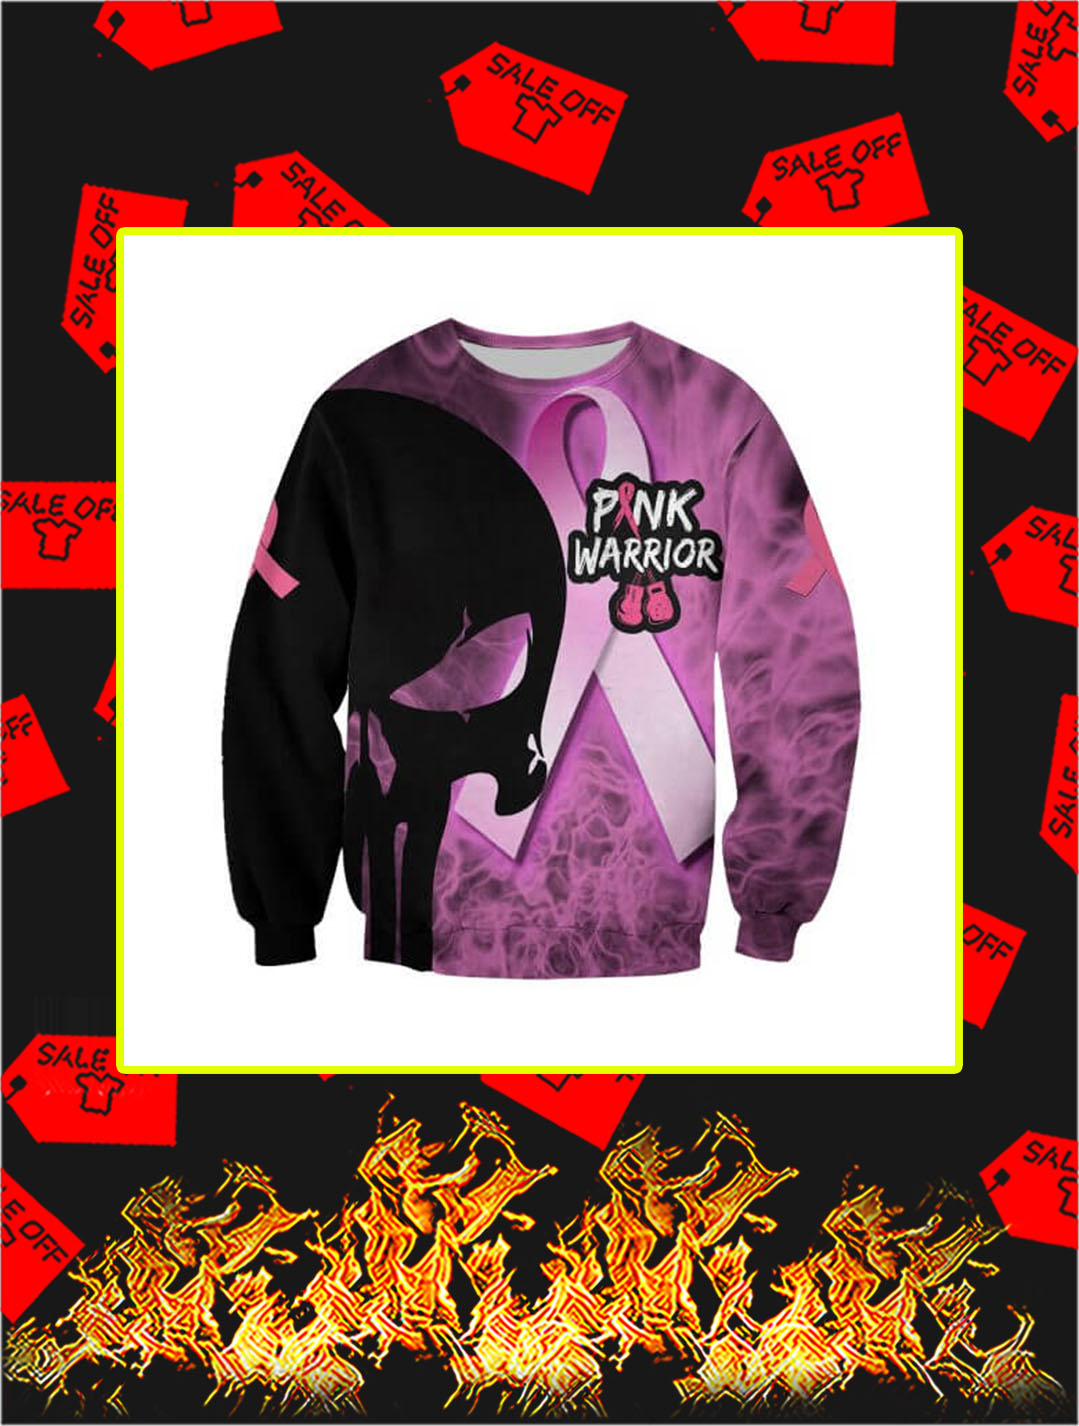 3D Printed Cancer Pink Warrior Punisher Skull Sweatshirt